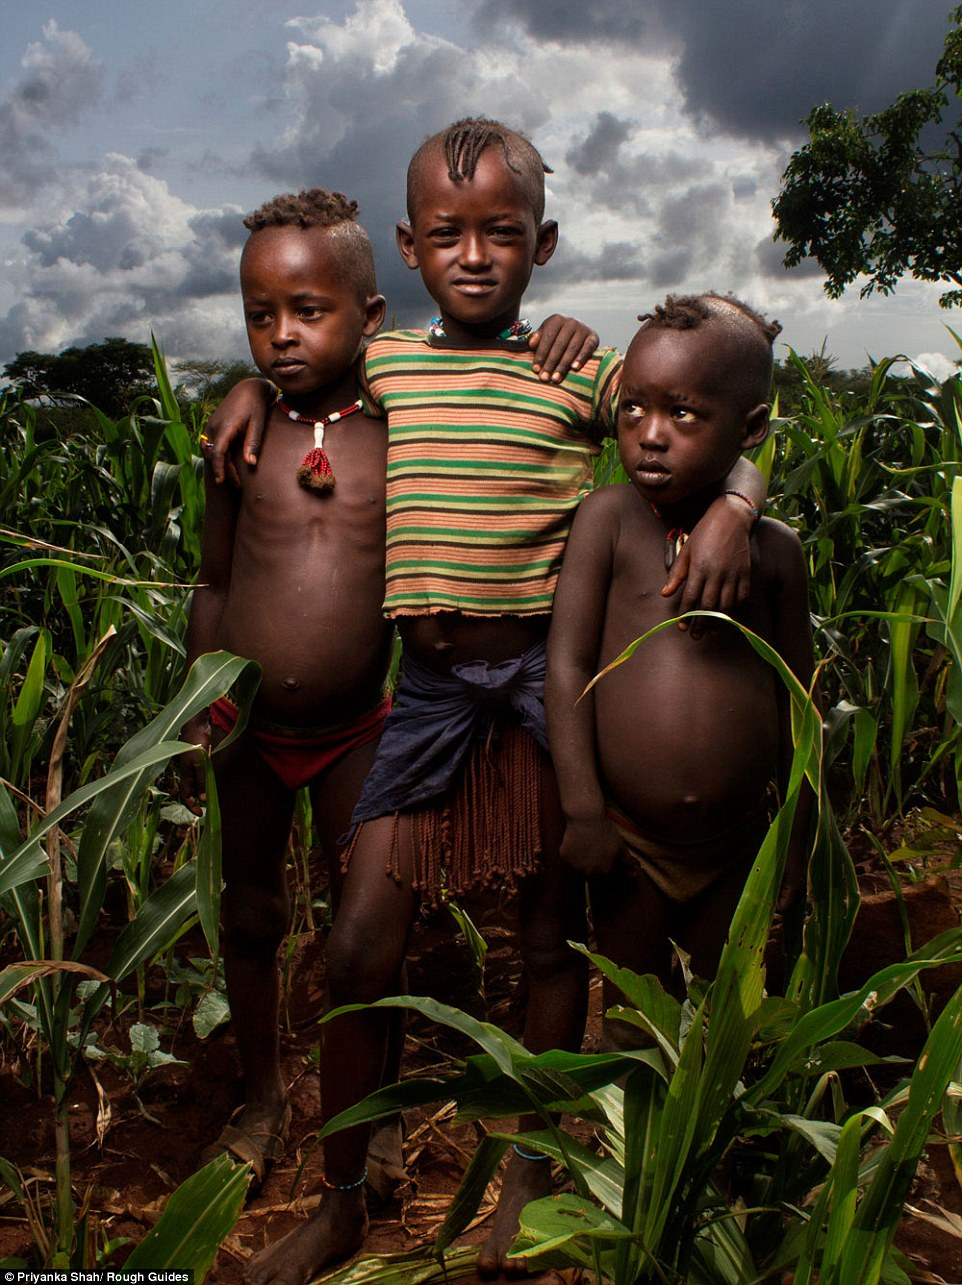 An older boy throws his arms around two younger boys in tribal wear as they pose in the long shrubbery of Ethiopia in this shot